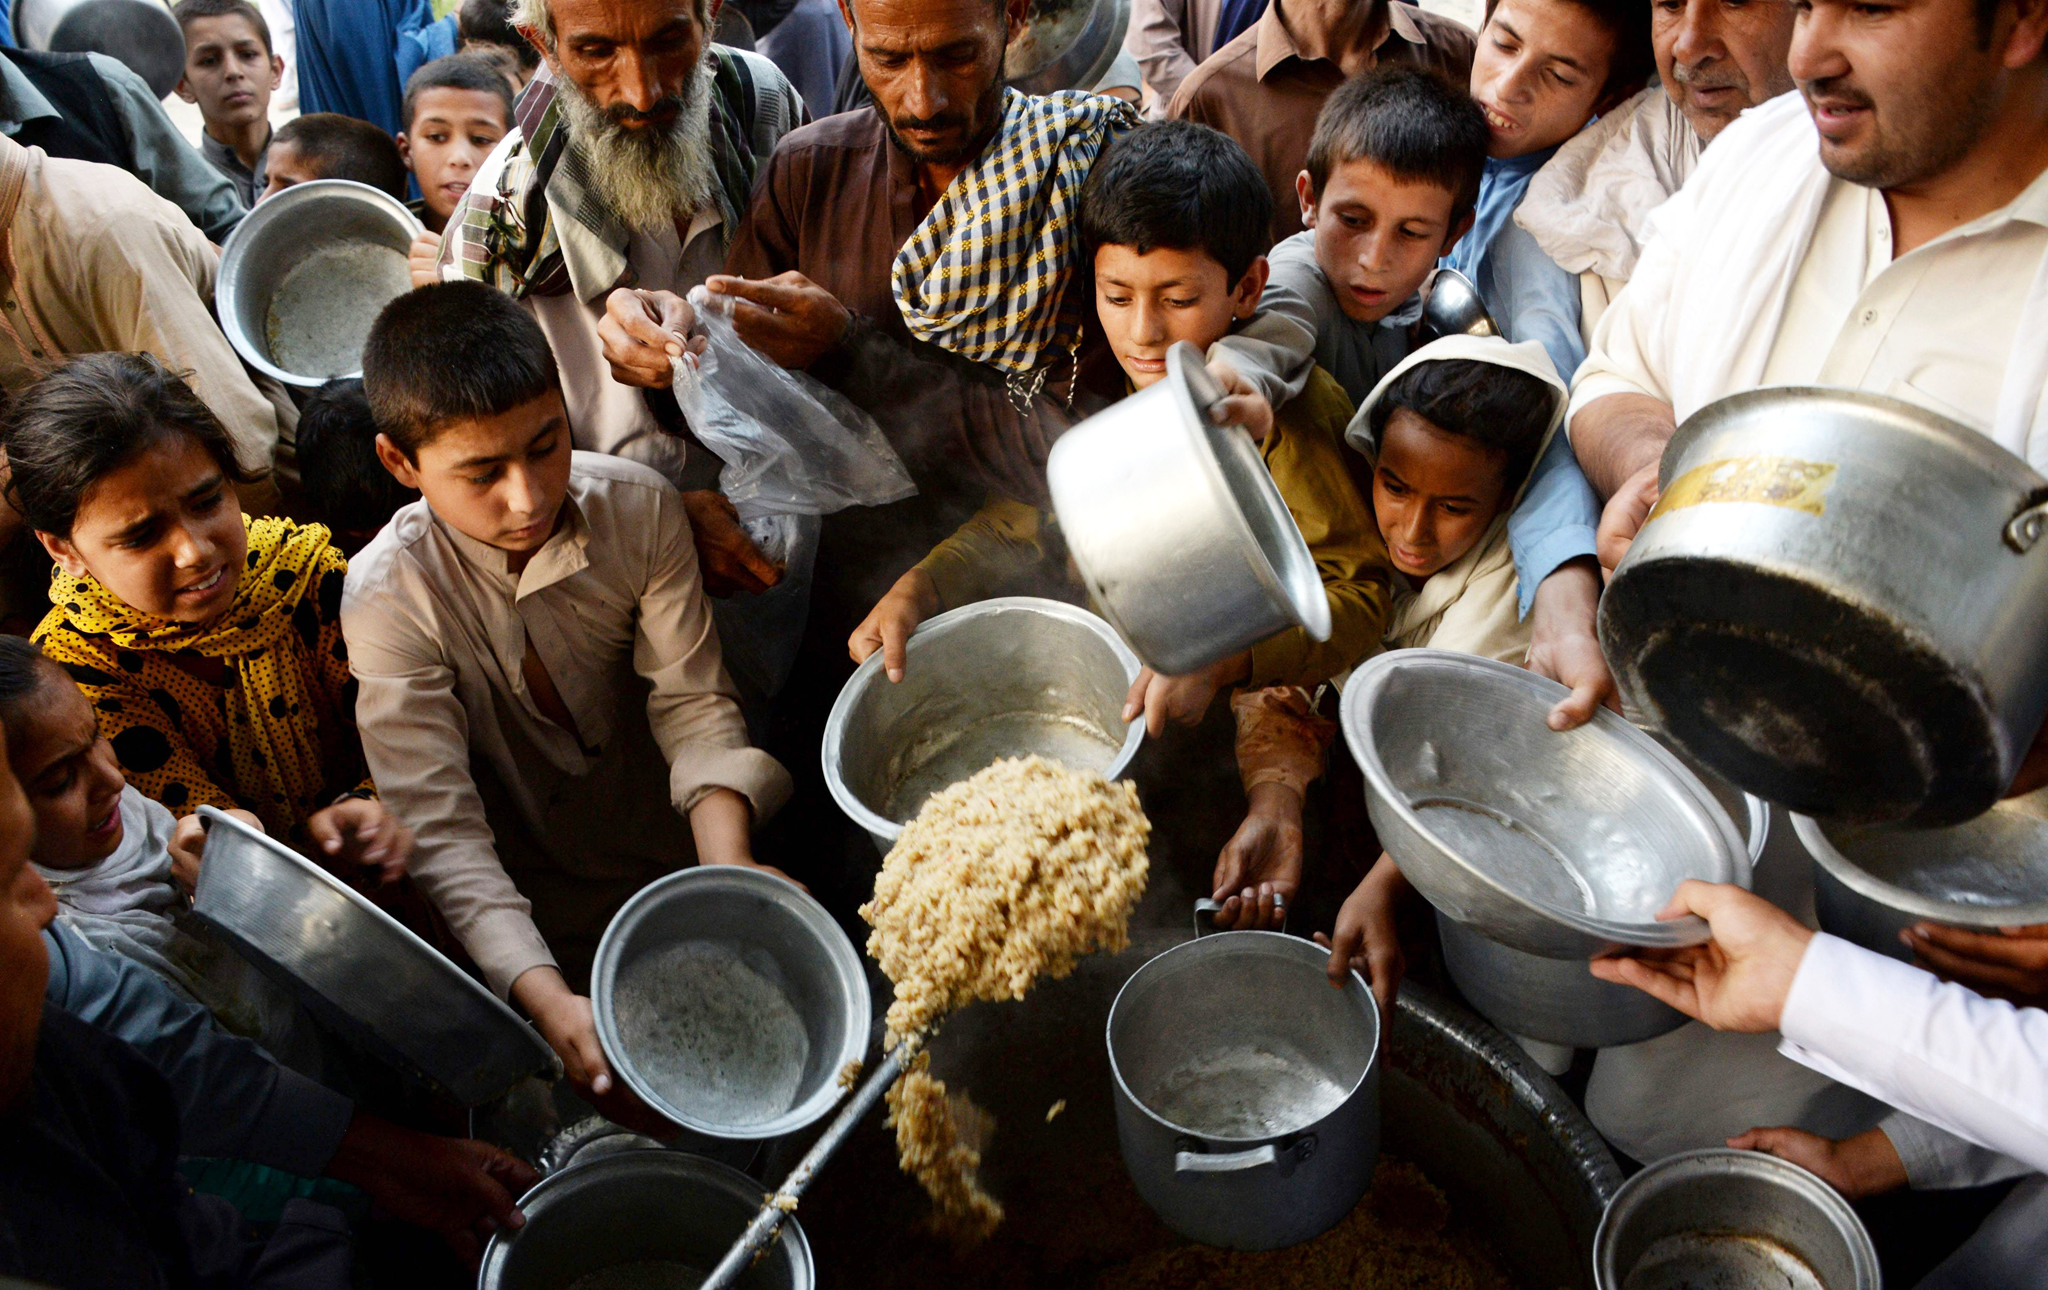 In this photograph taken on June 9, 2016, Afghan children hold dishes as they wait to receive food donated by a private charity for the needy during the Islamic holy month of Ramadan in the city of Jalalabad.    Across the Muslim world, the faithful fast from dawn to dusk and strive to be more pious during the holy month, which ends with the Eid holiday. / AFP PHOTO / NOORULLAH SHIRZADANOORULLAH SHIRZADA/AFP/Getty Images